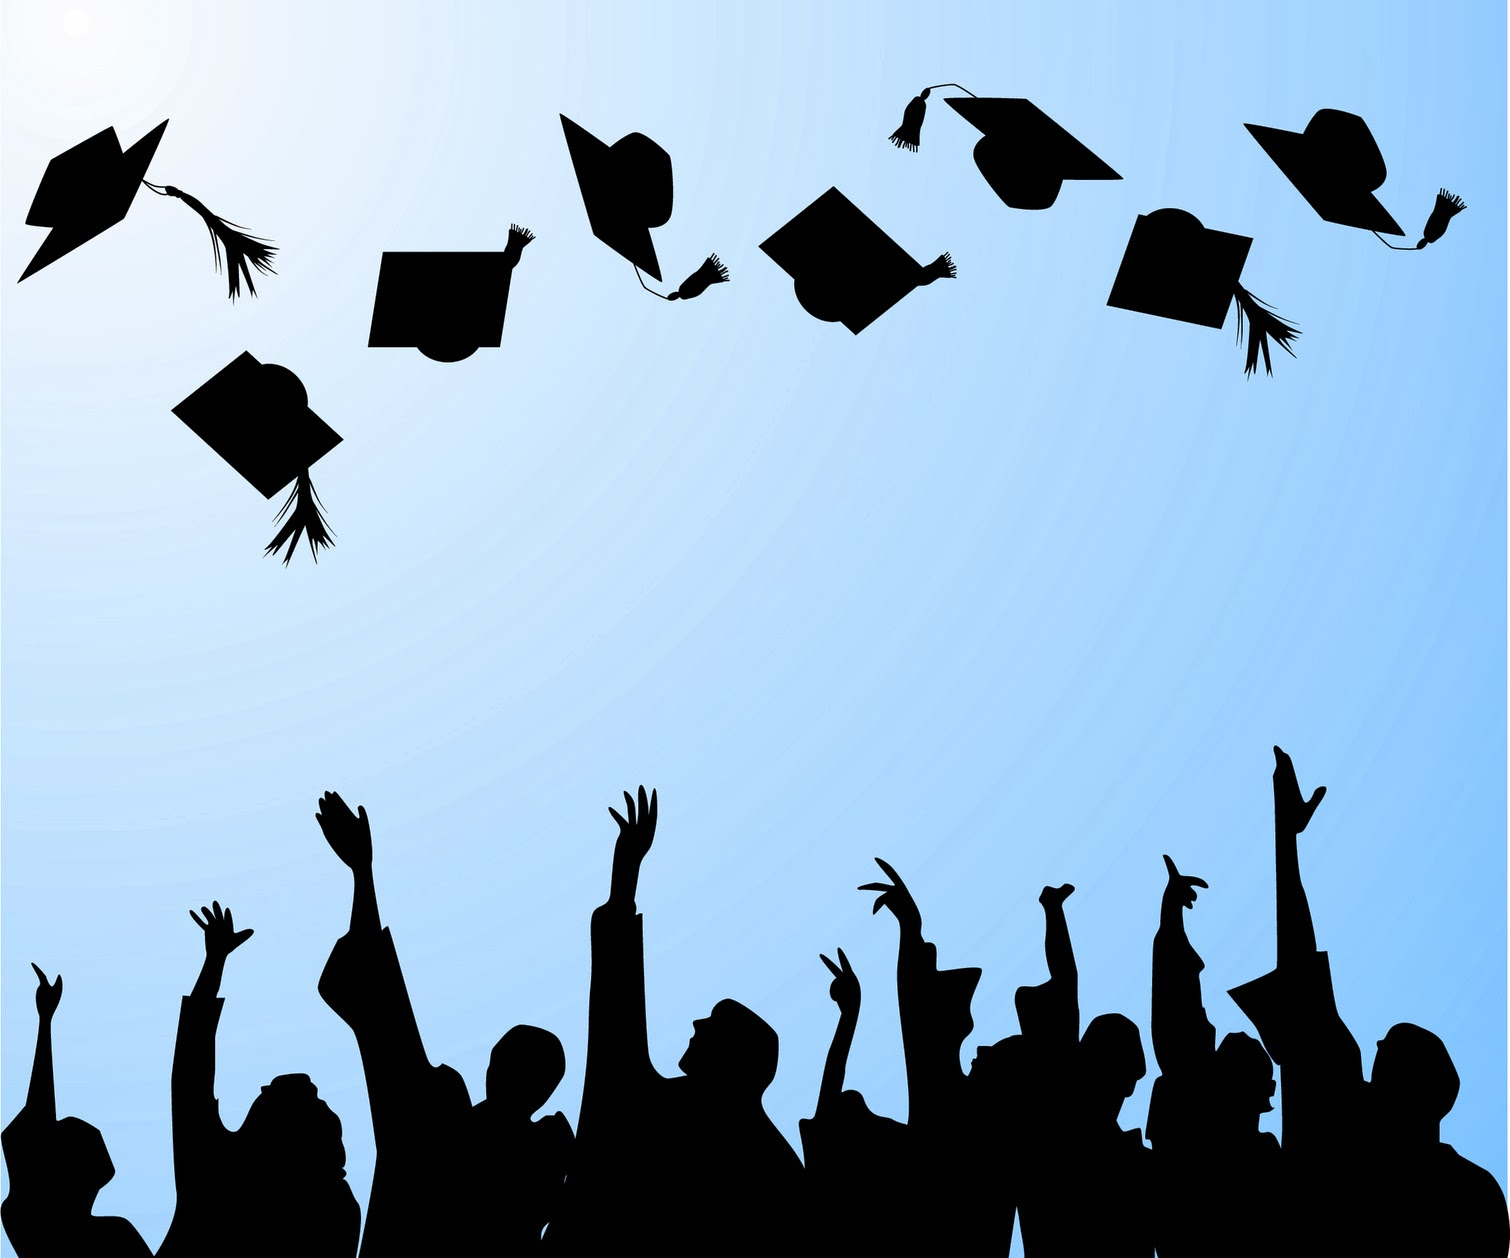 One of the most difficult speeches to prepare is an address to a graduation class, which is why ...